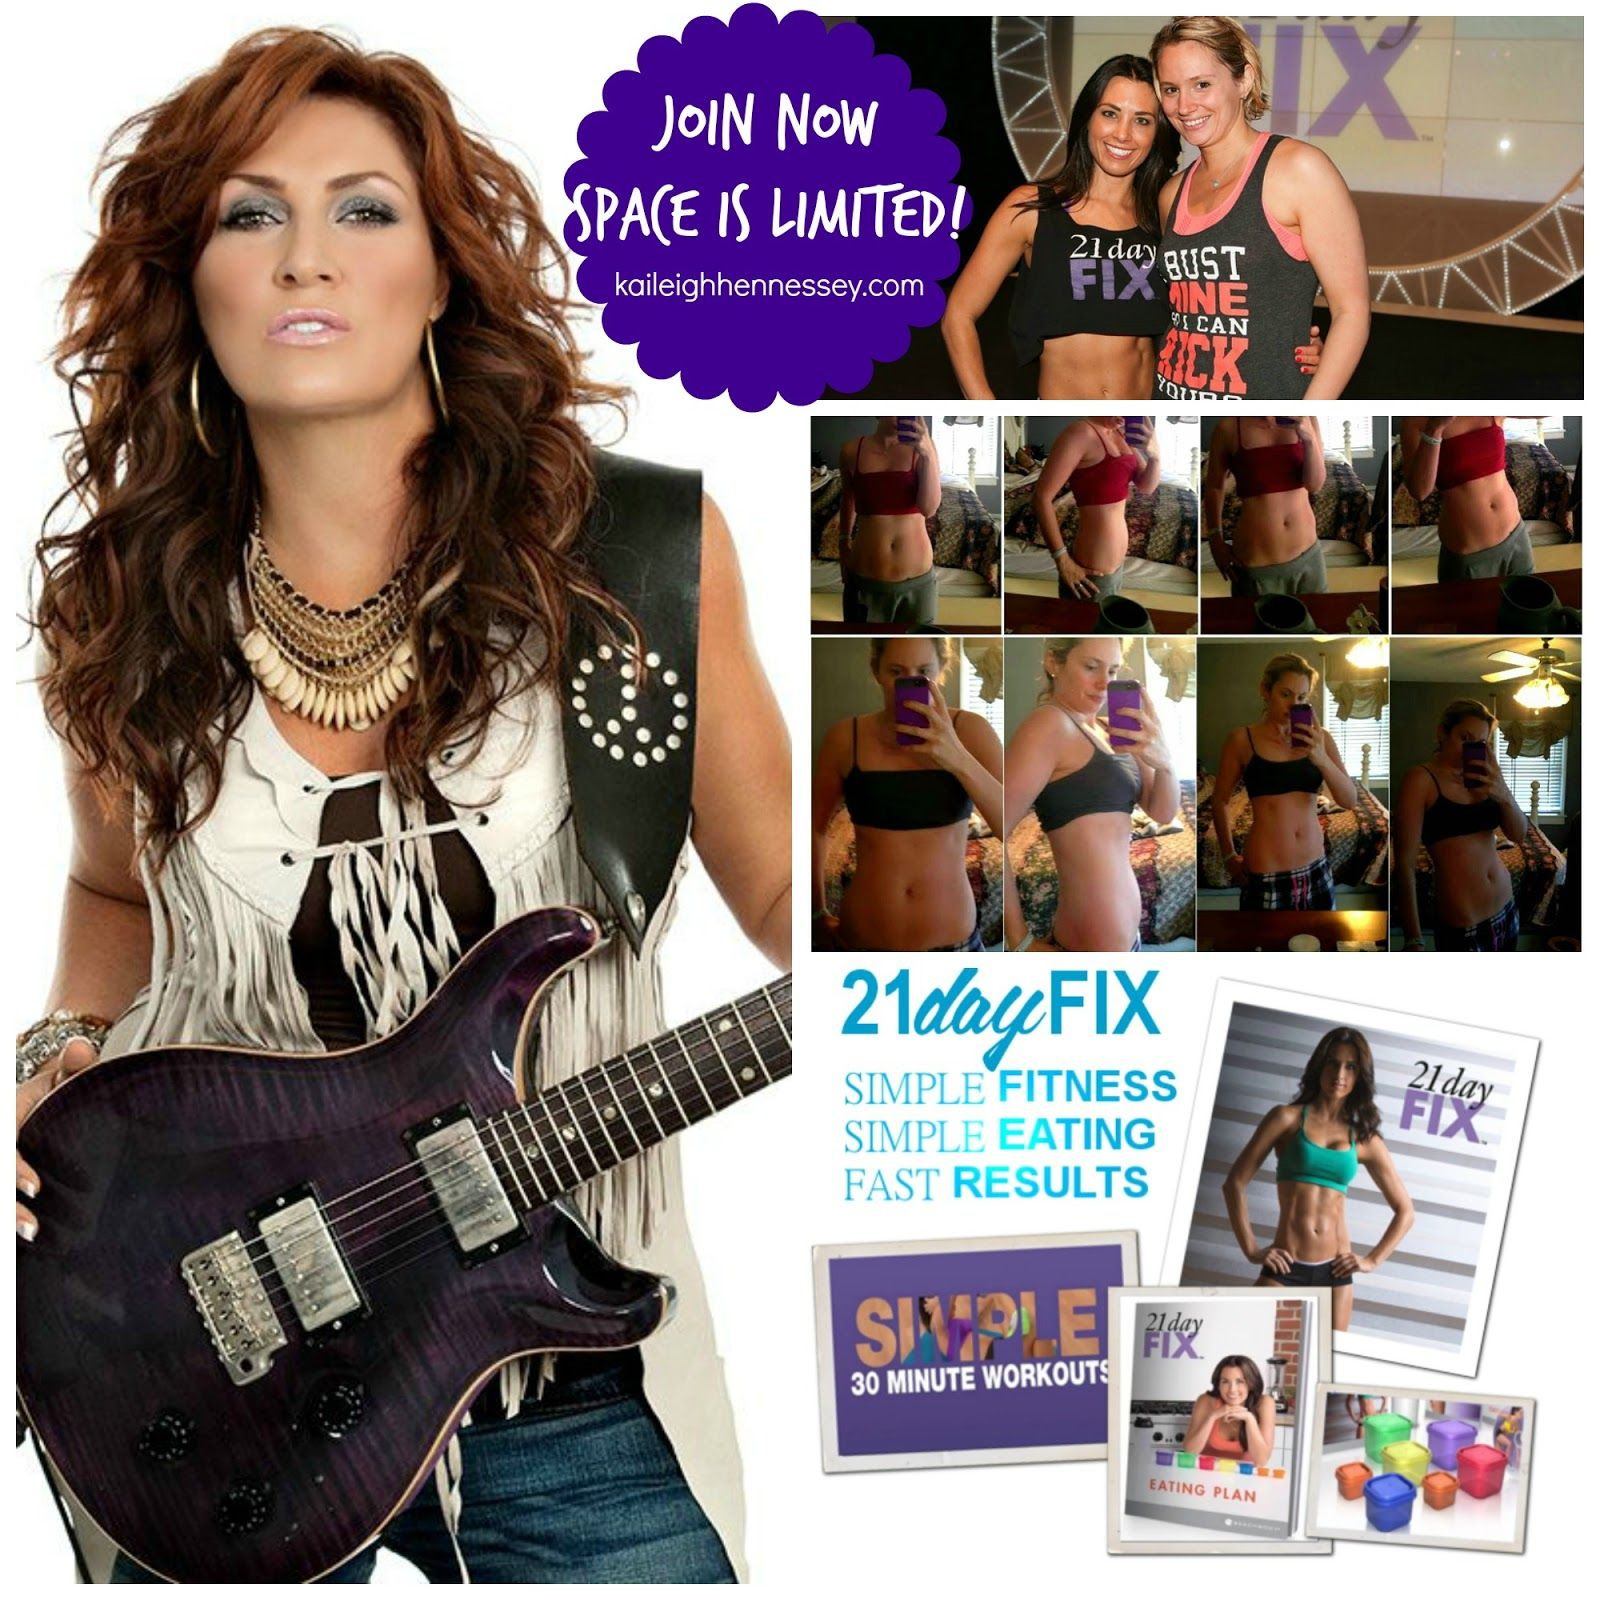 What you will get: *What you get: * A spot in the group with Jo Dee Messina for FREE * A 21 Day Fitness and nutrition plan * Nutrition * 1:1 Support for your weight loss goals * Surprises and MUCH, MUCH, MORE! #challenge #21dayfix #beachbody